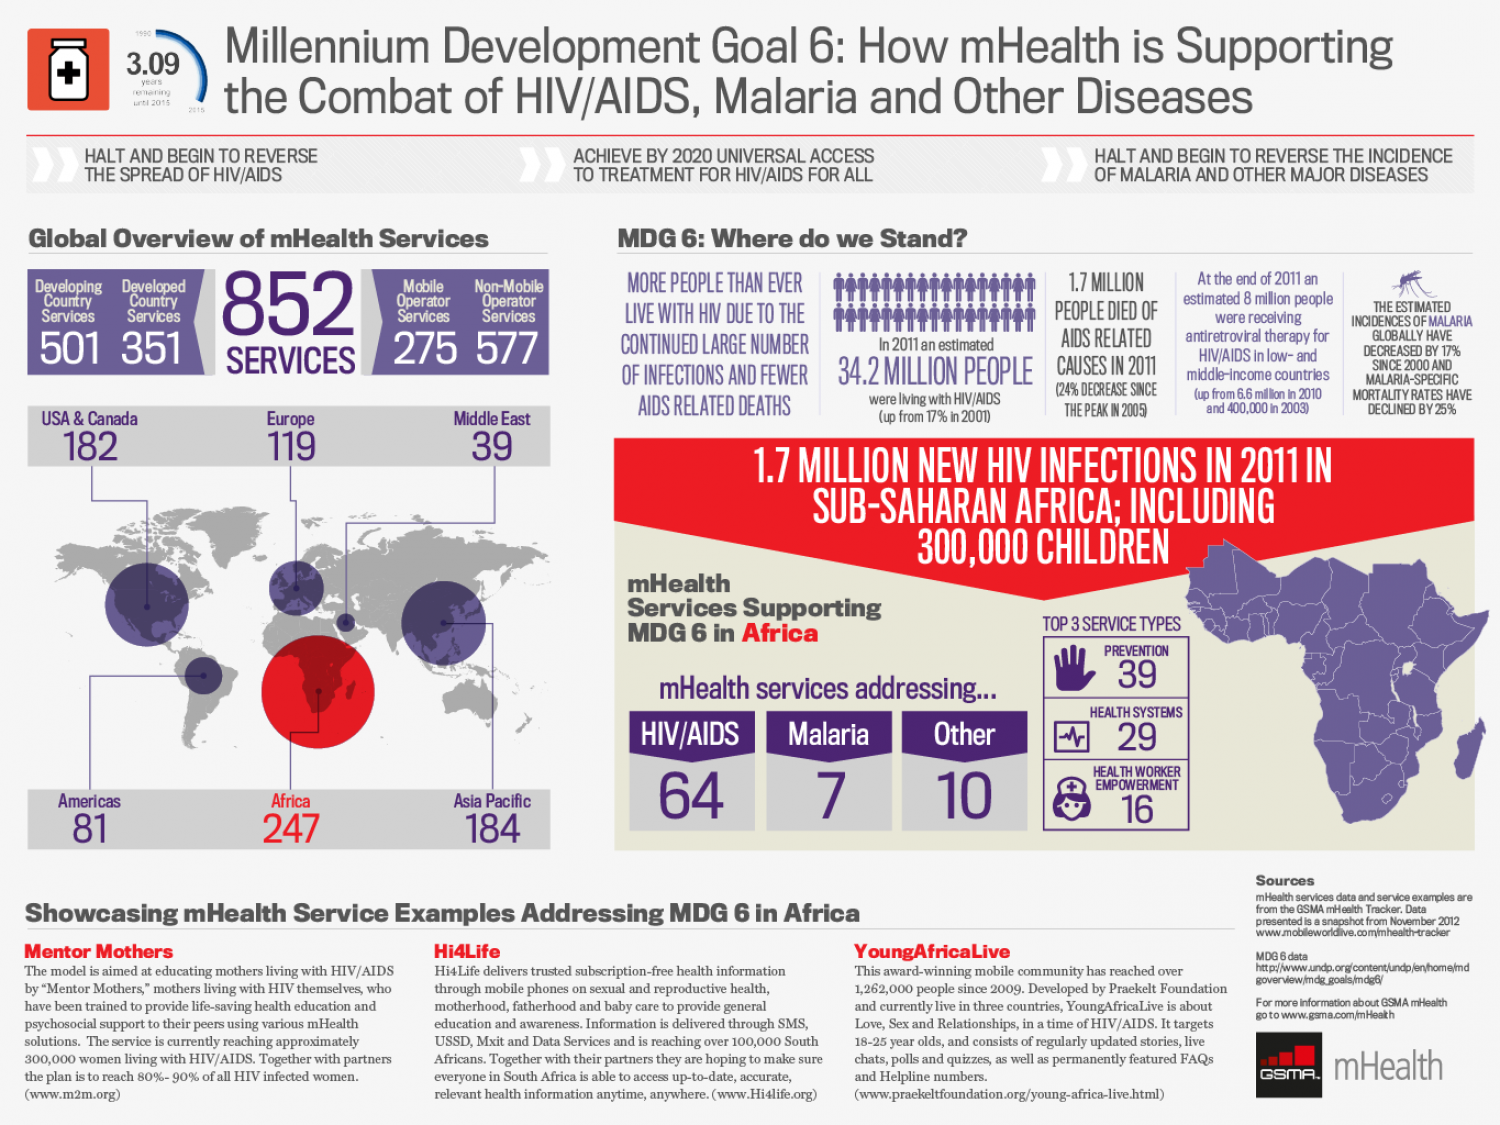 Millennium Development Goal 6: How mHealth is Supporting the Combat of HIV/AIDS, Malaria and Other Diseases Infographic